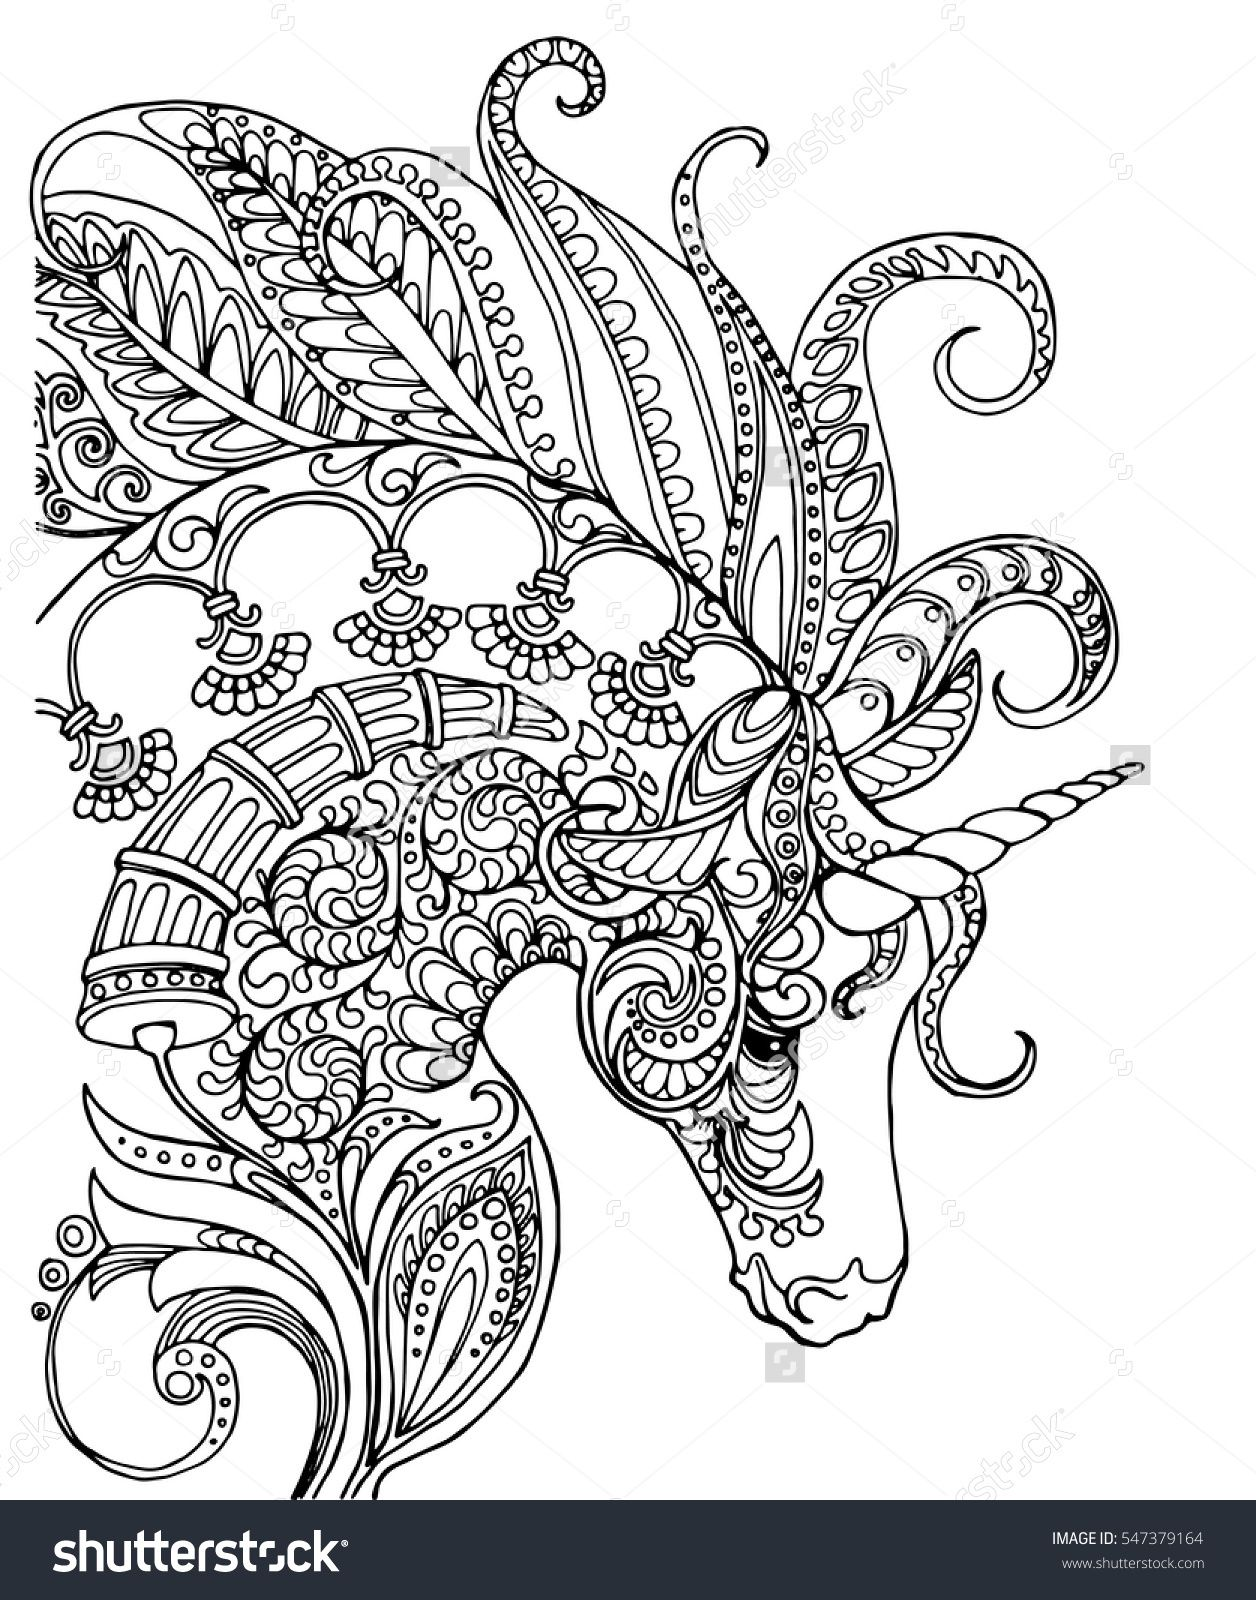 Elegant zentangle patterned unicorn